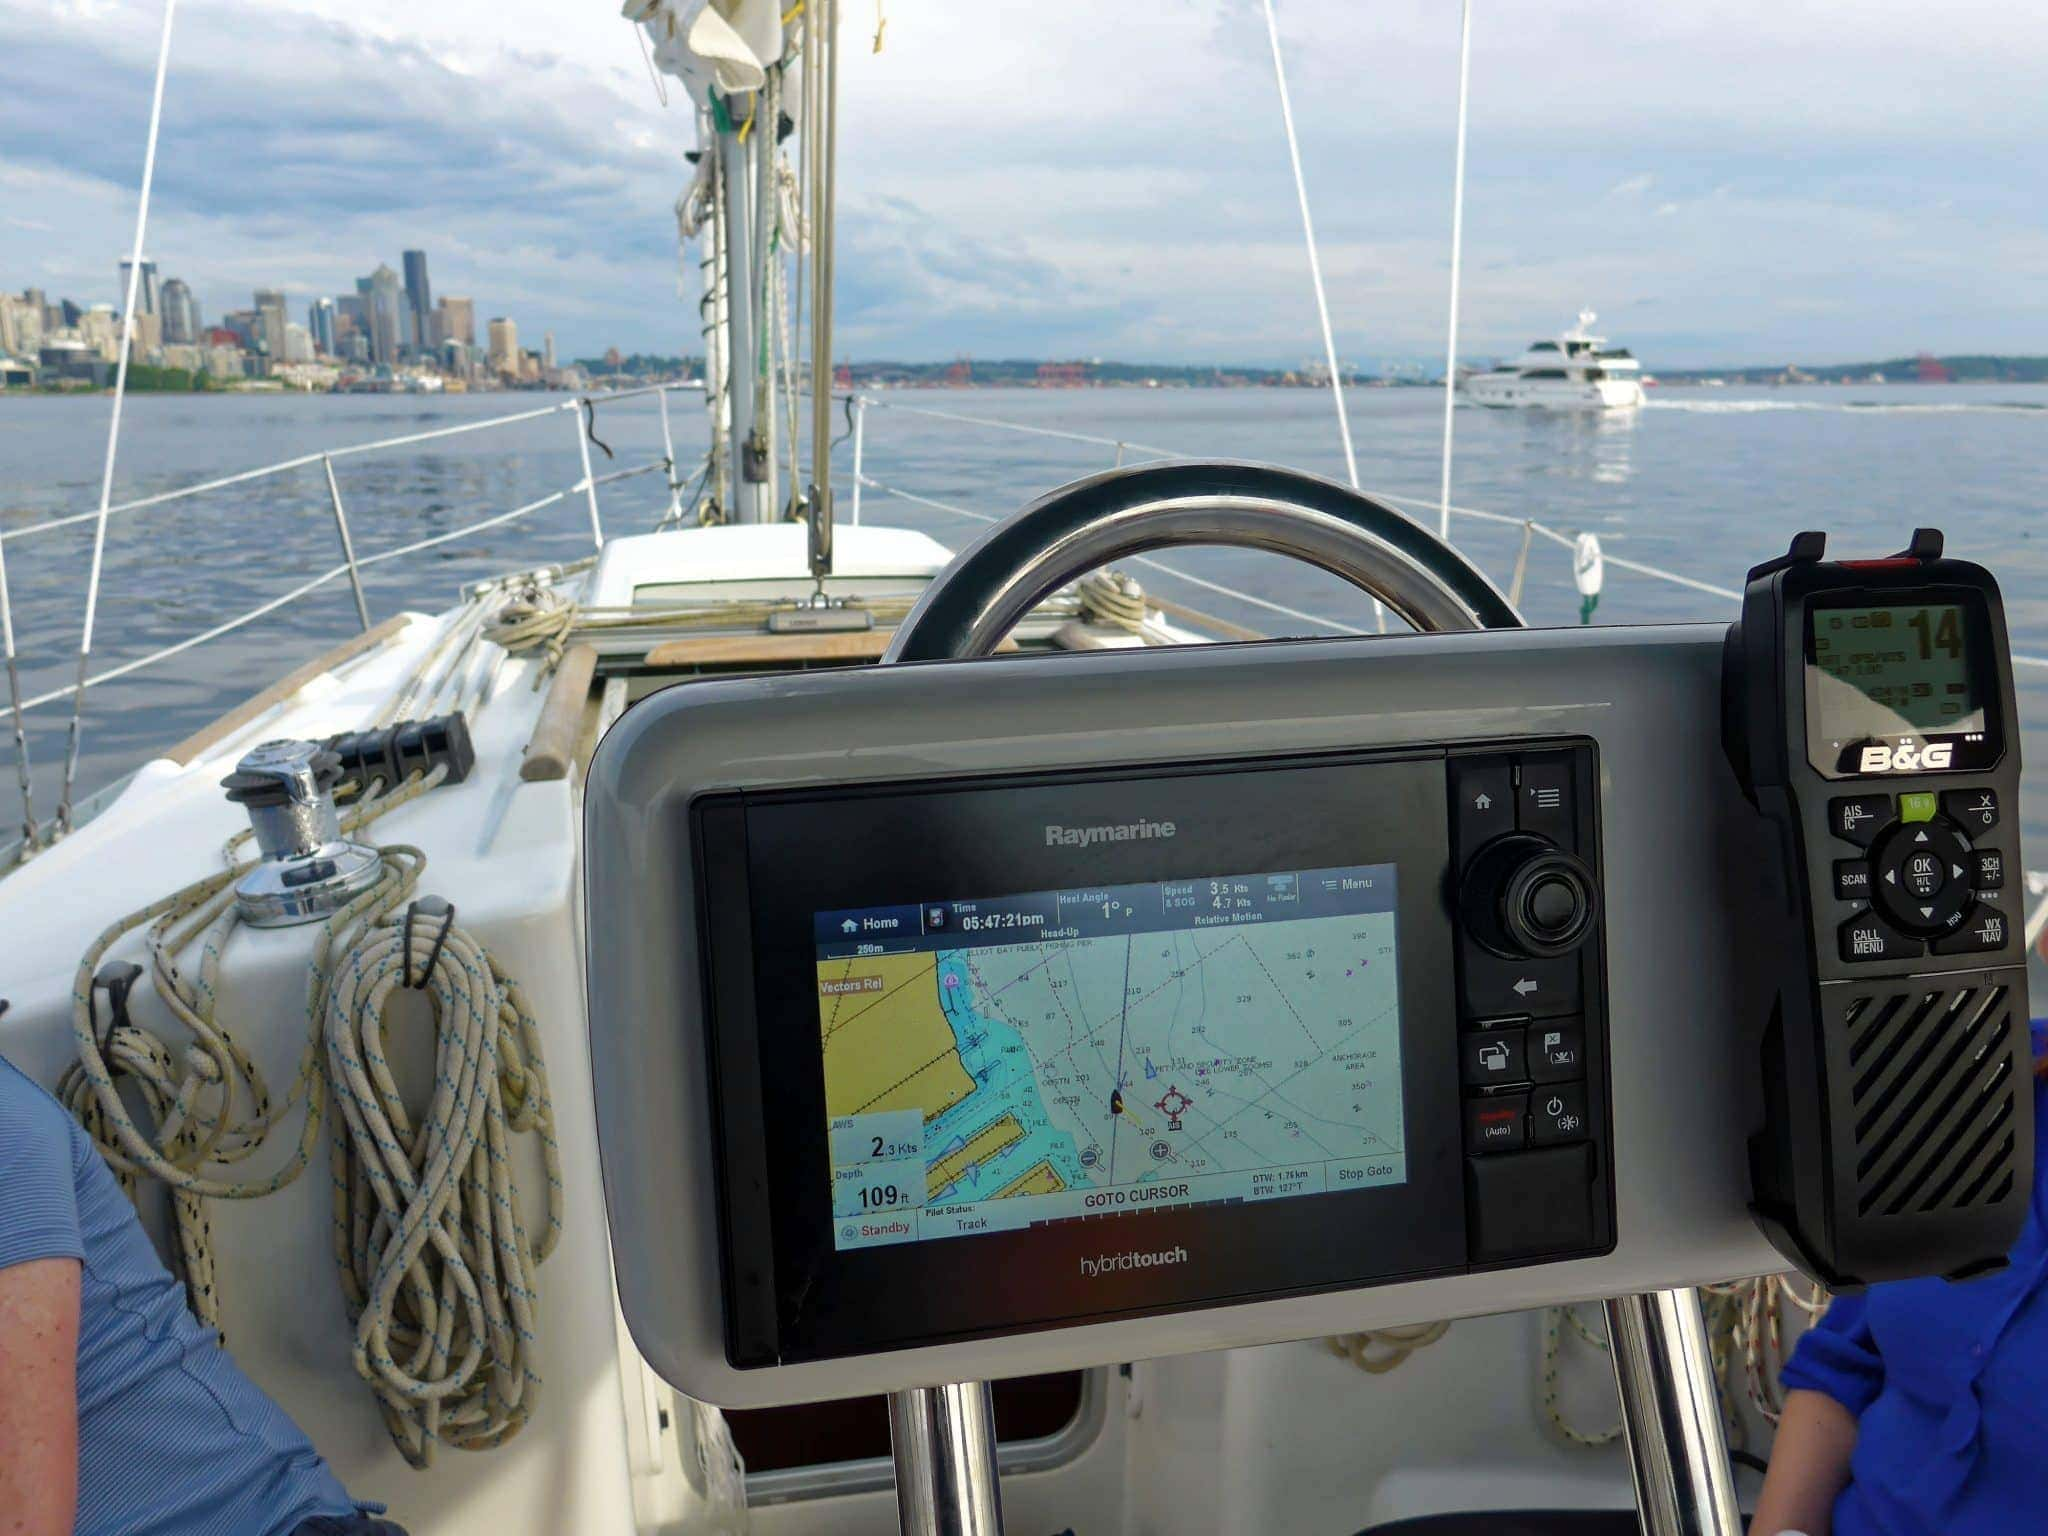 grace navpod with motor boat and seattle in the distance